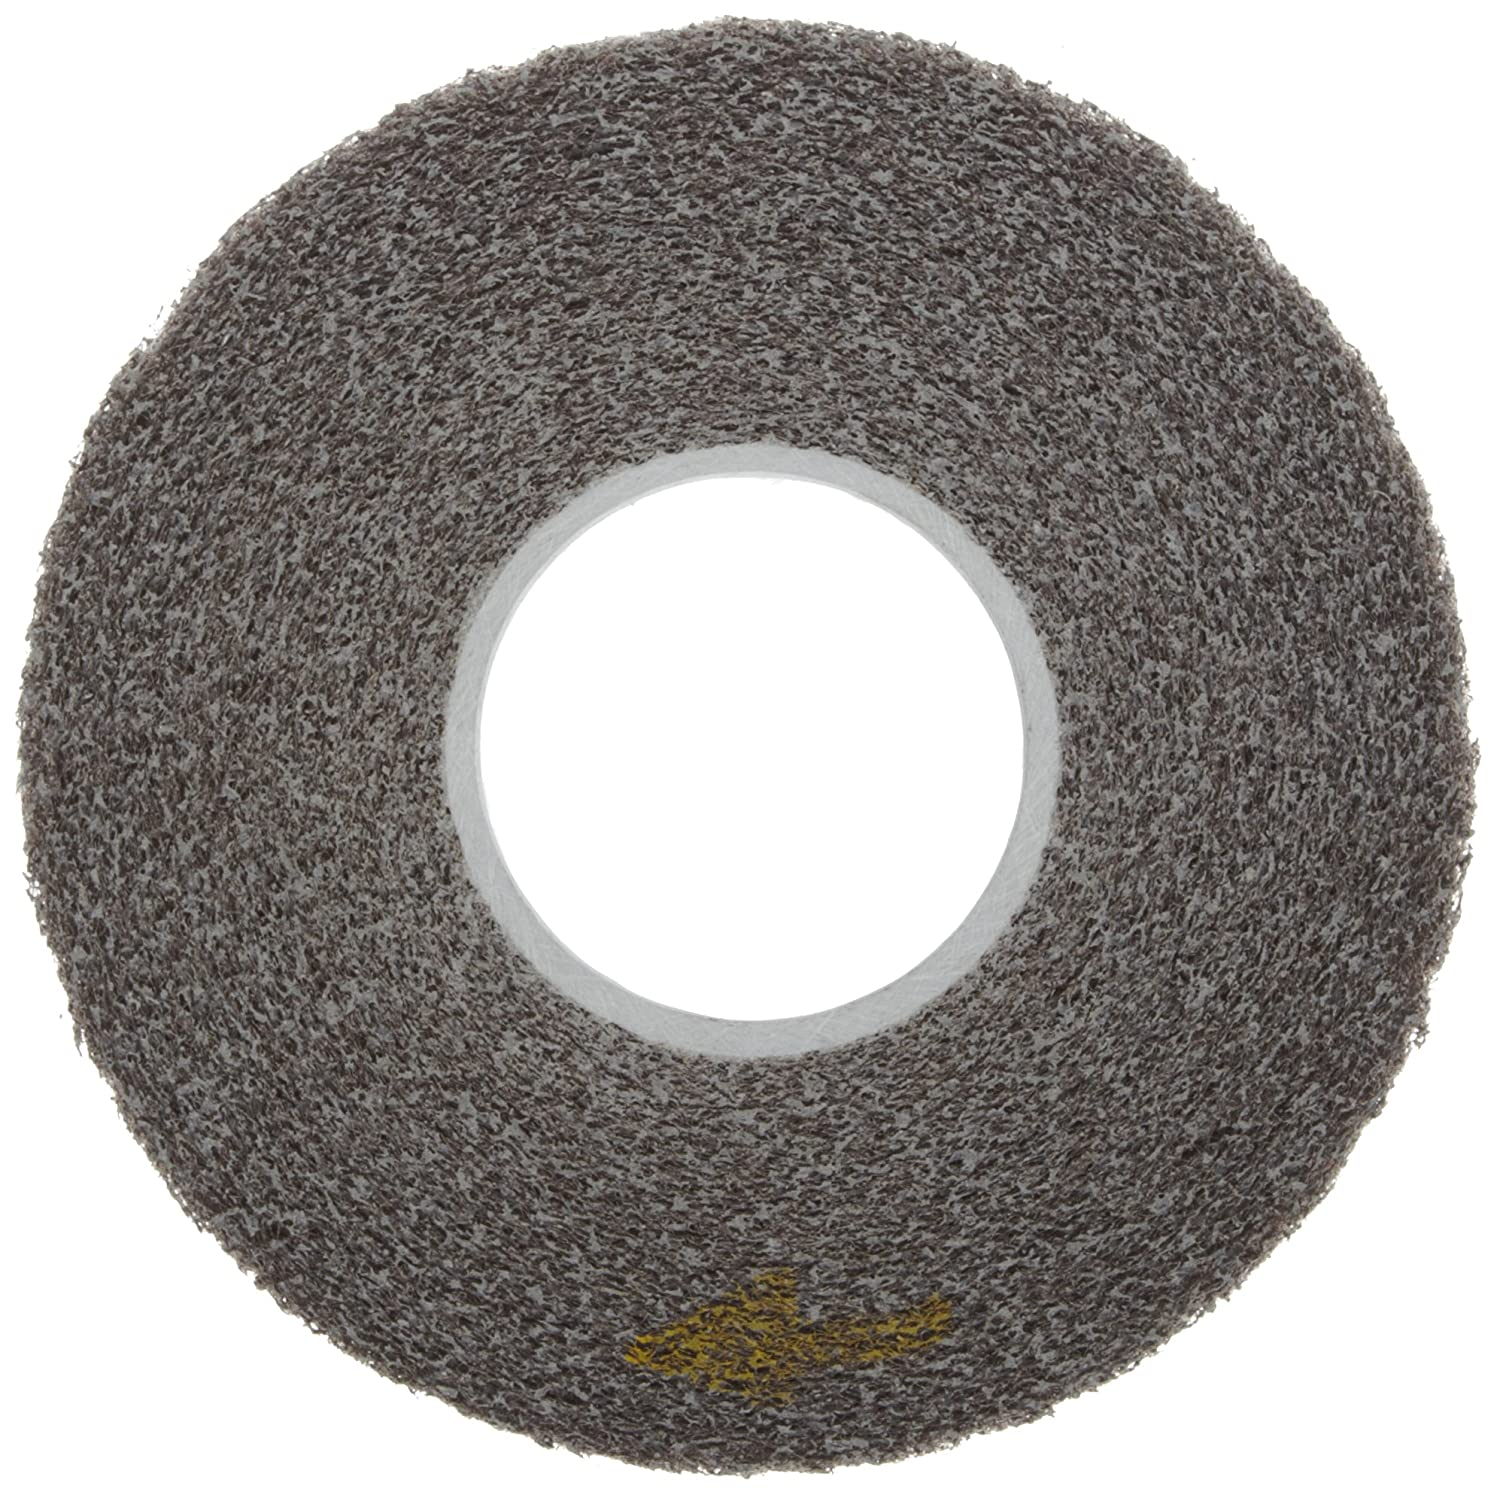 2S MED Scotch-Brite 13332 Multi-Finishing Wheel 12 x 1 x 5